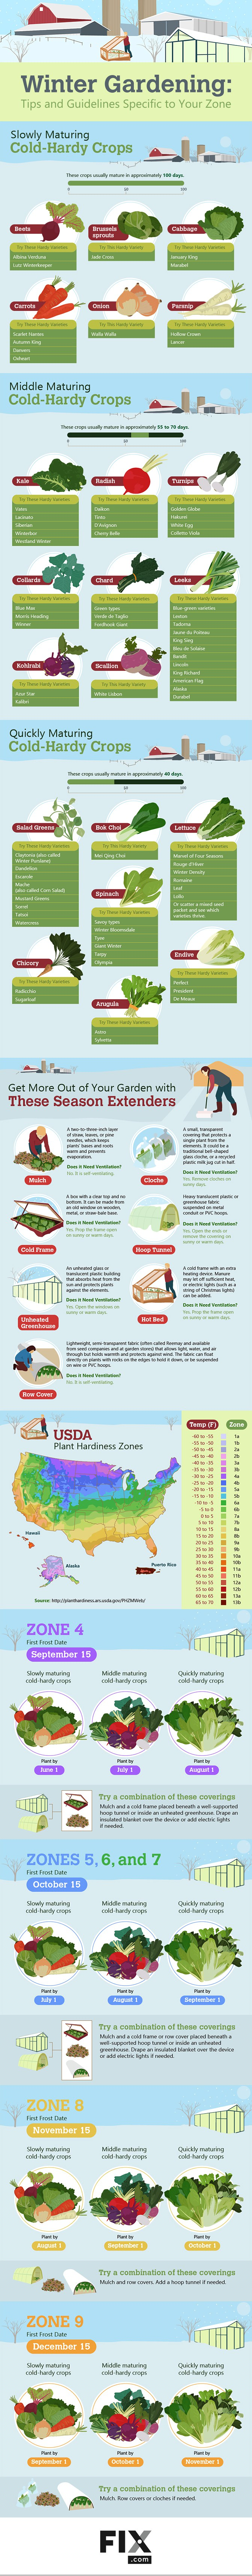 a comprehensive guide to winter gardening